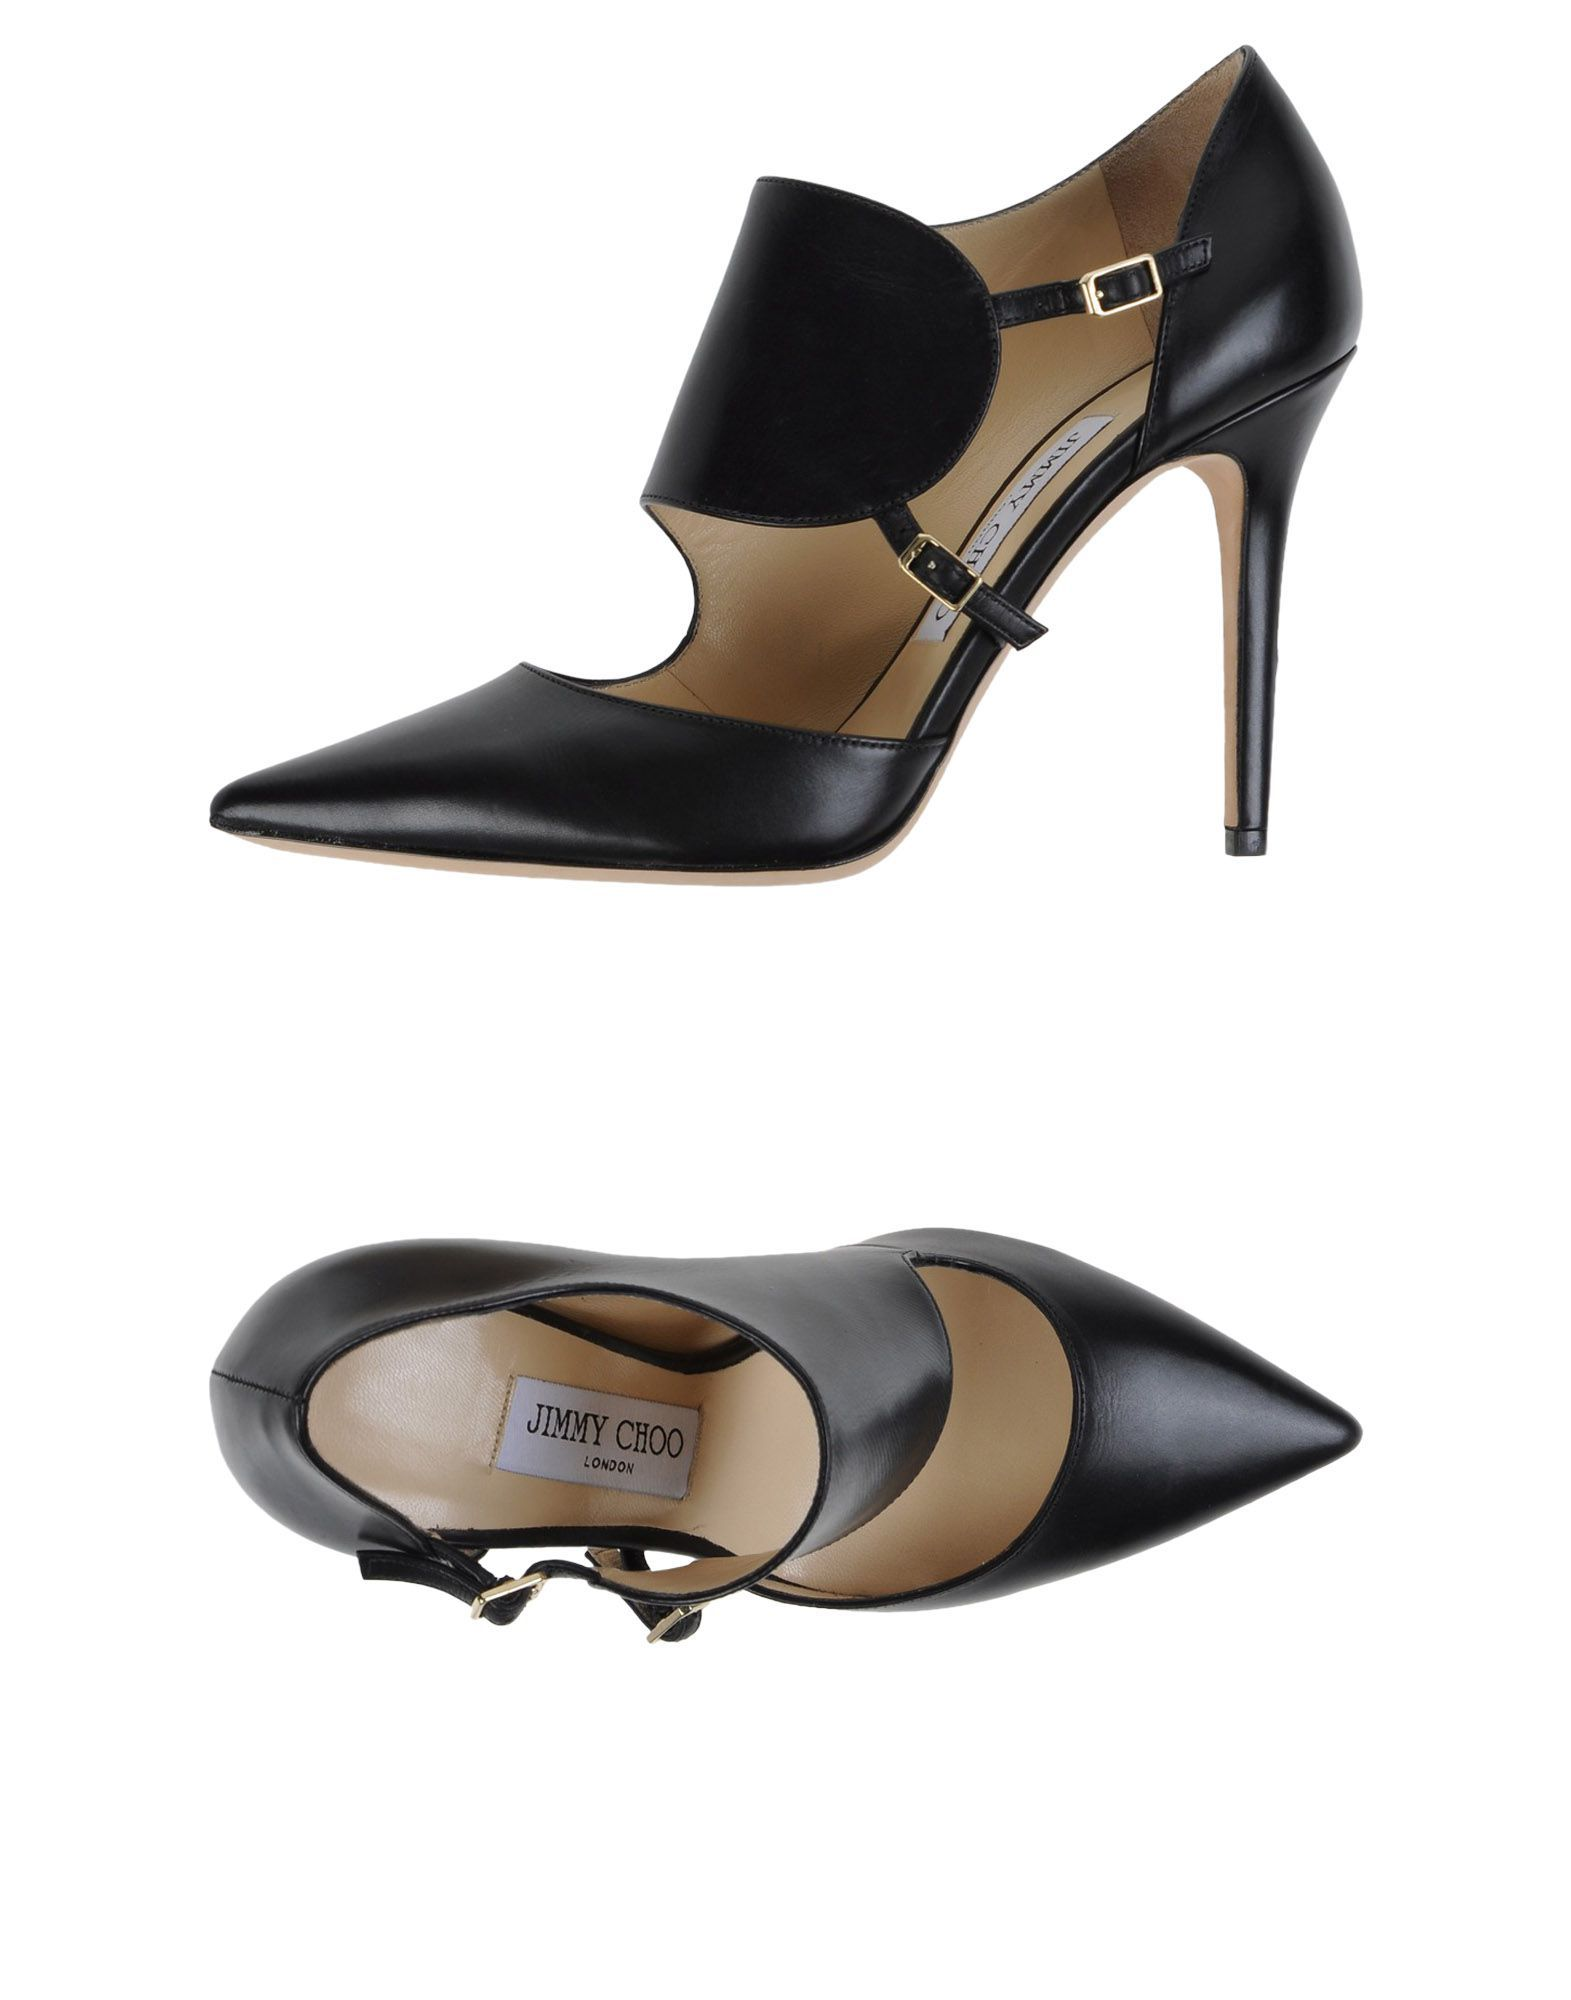 b3a9edd632f JIMMY CHOO LONDON Court